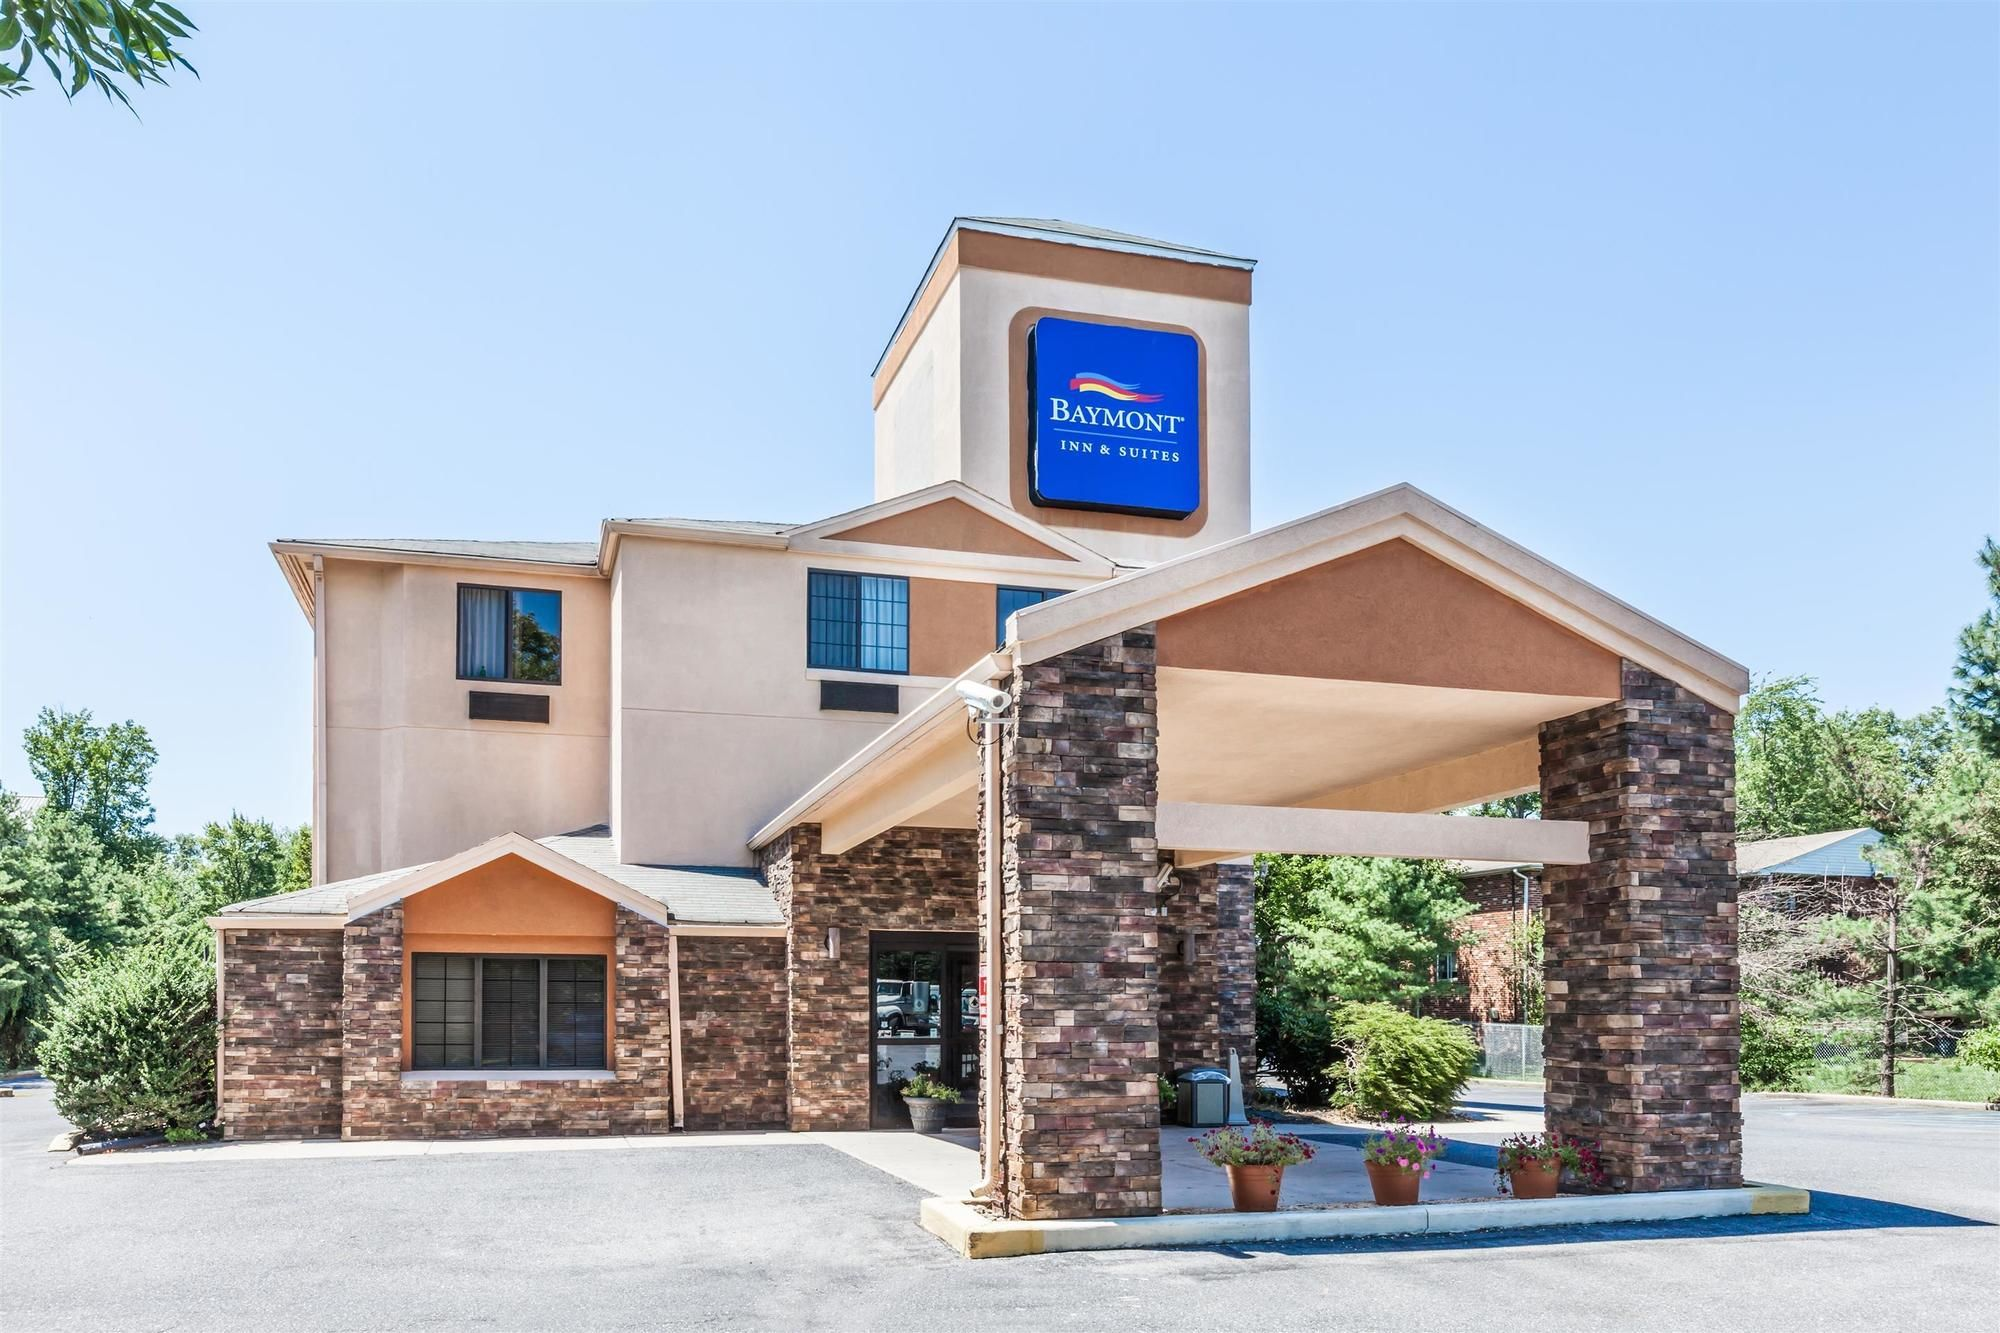 Baymont Inn & Suites Newark at University of Delaware in Newark, DE